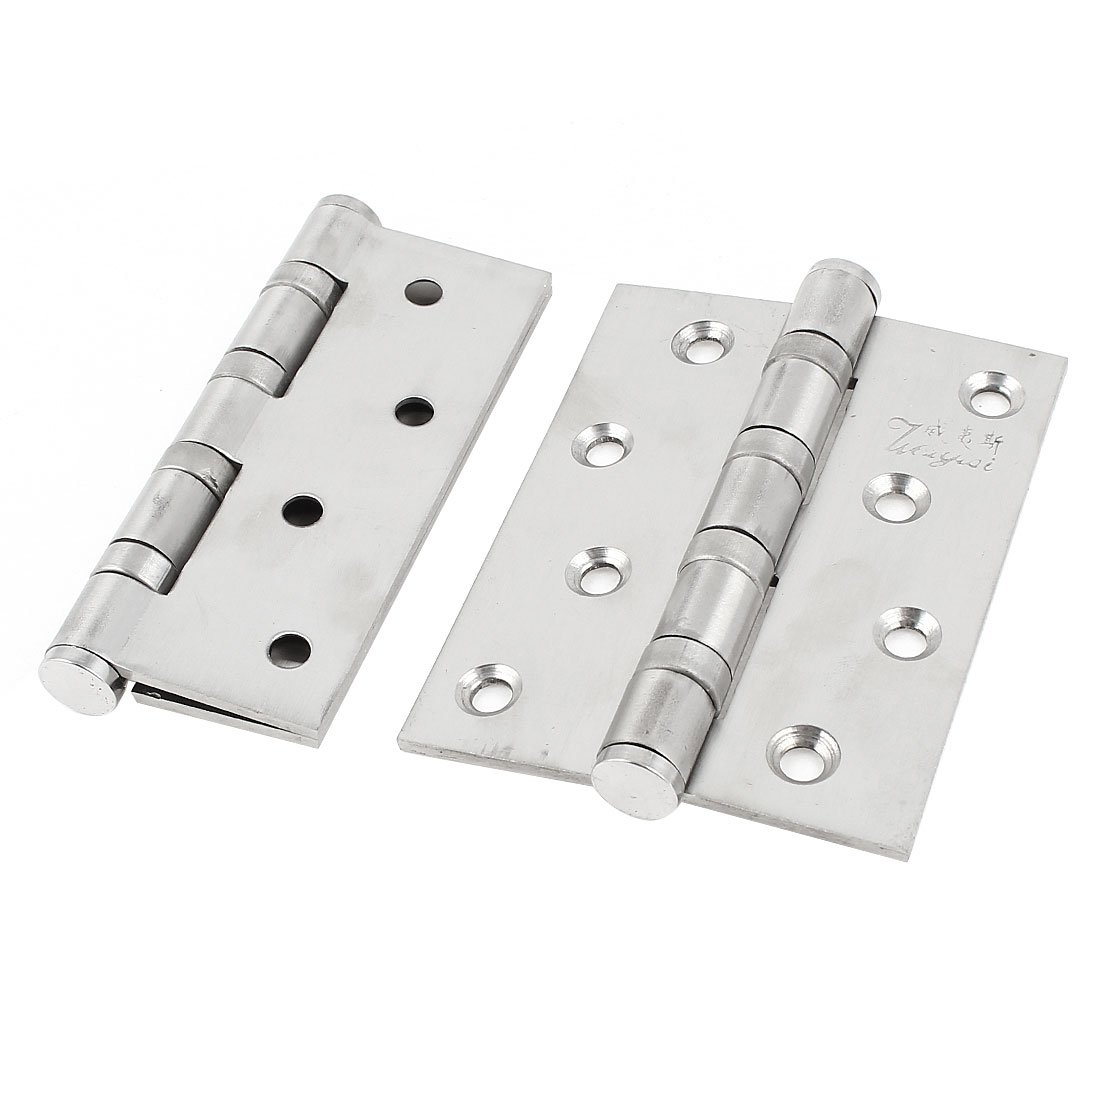 4-inch Silver Tone Folding Cupboard Cabinet Door Hinge Hardware 2 Pcs